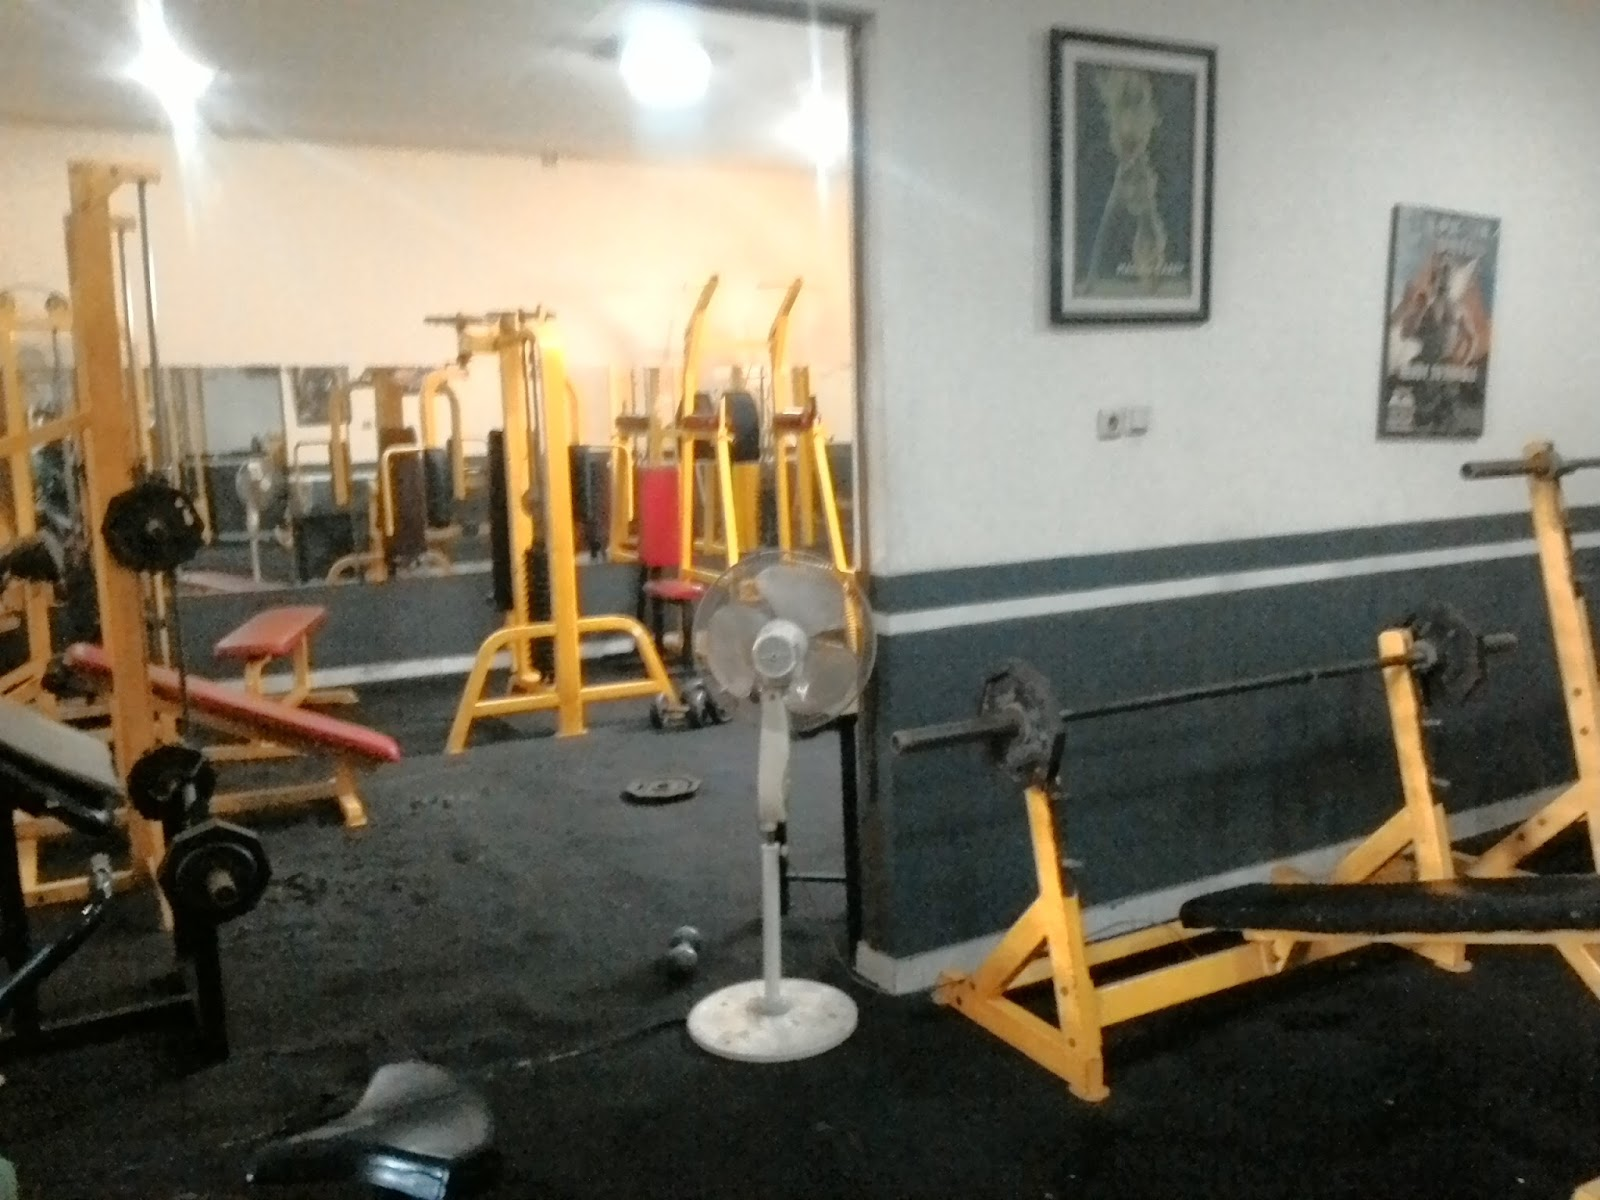 Bang Day Gym - photo